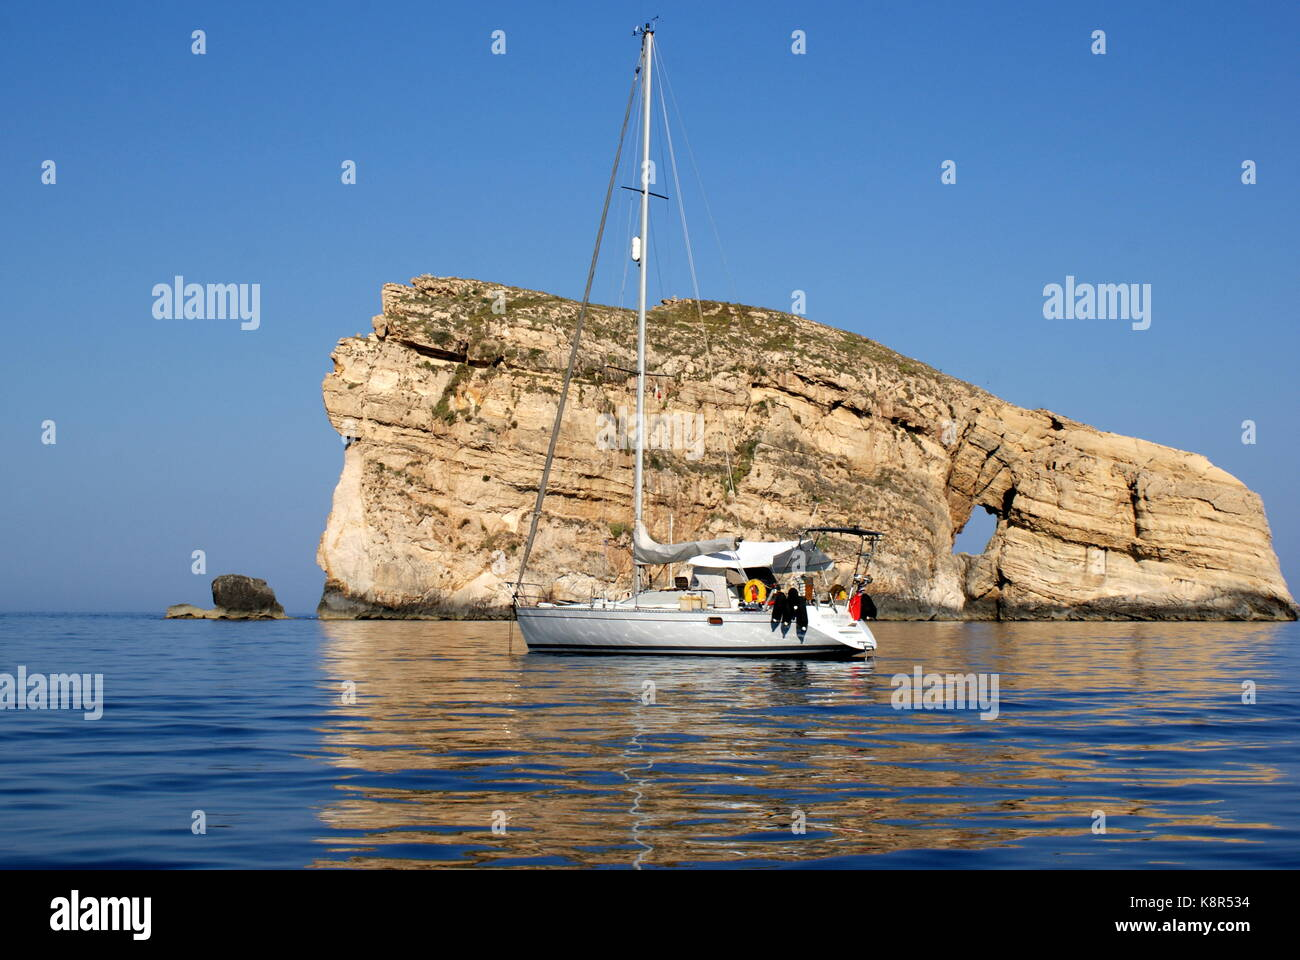 Sailing yacht anchored in front of Fungus rock, Dwejra bay, San Lawrenz, Gozo, Maltese archipelago - Stock Image